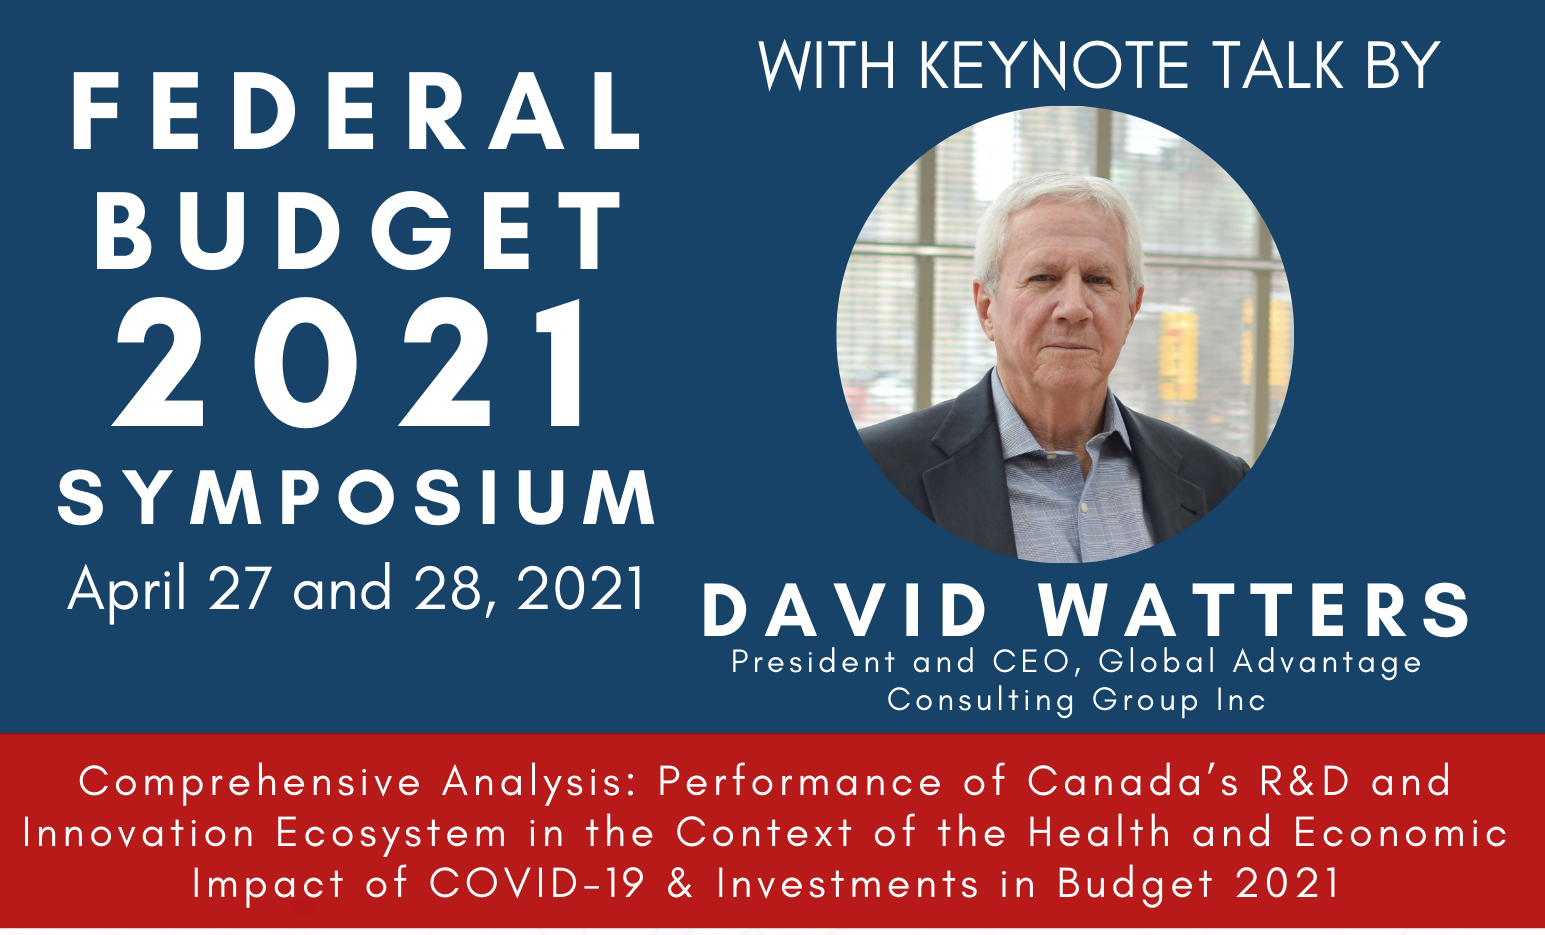 Federal Budget 2021 Symposium, April 27th with a Keynote lecture by David Watters (picture shown)President and CEO, Global Advantage Consulting Group Inc. Comprehensive Analysis: Performance of Canada's R&D and Innovation Ecosystem in the Context of the Health and Economic Impact of COVID-19 & Investments in Budget 2021 And many more panelists